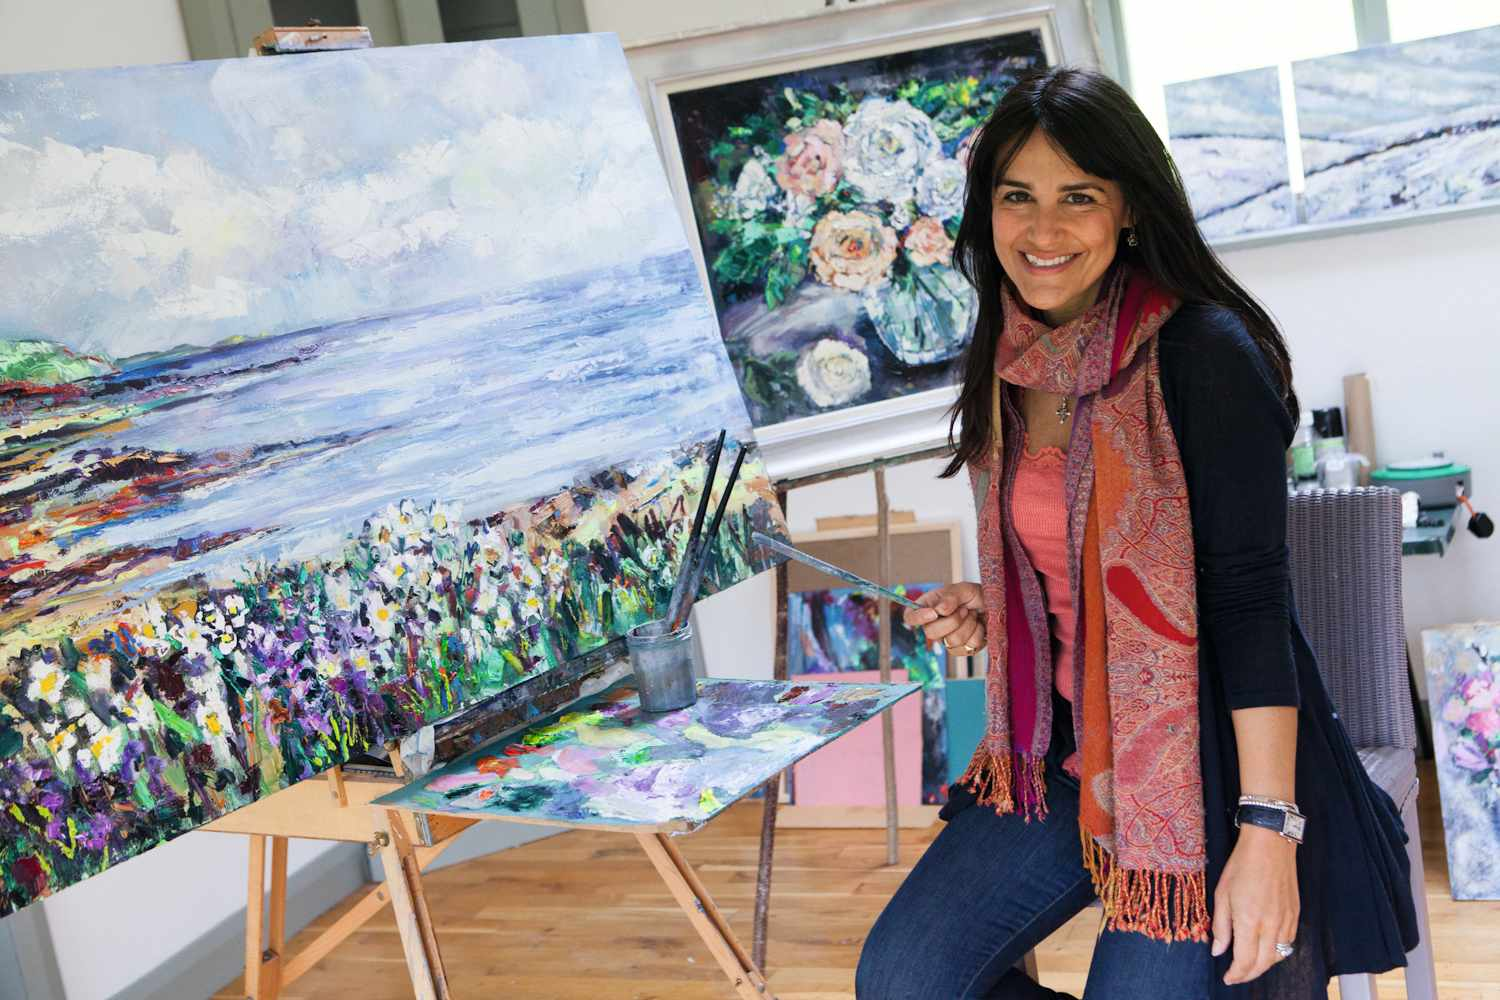 Artist Laura Wallace surrounded by oil paintings